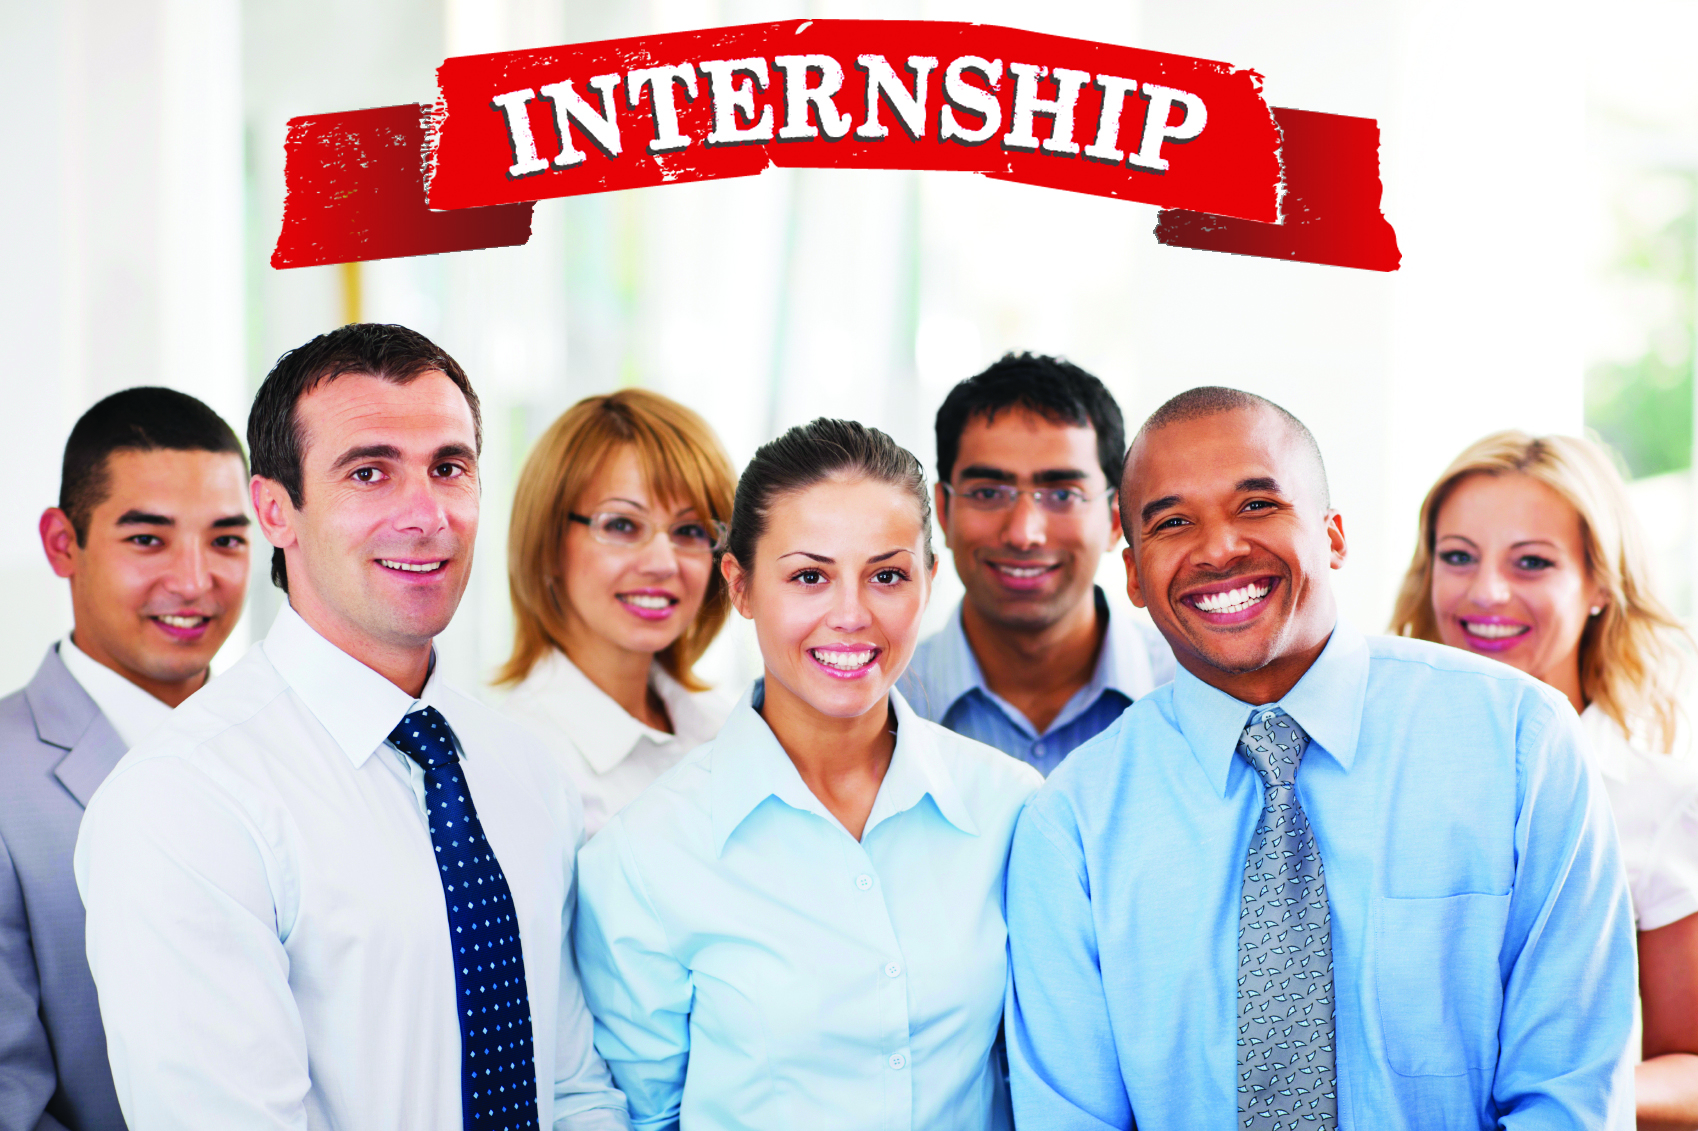 5 ways to find unadvertised internship heysuccess